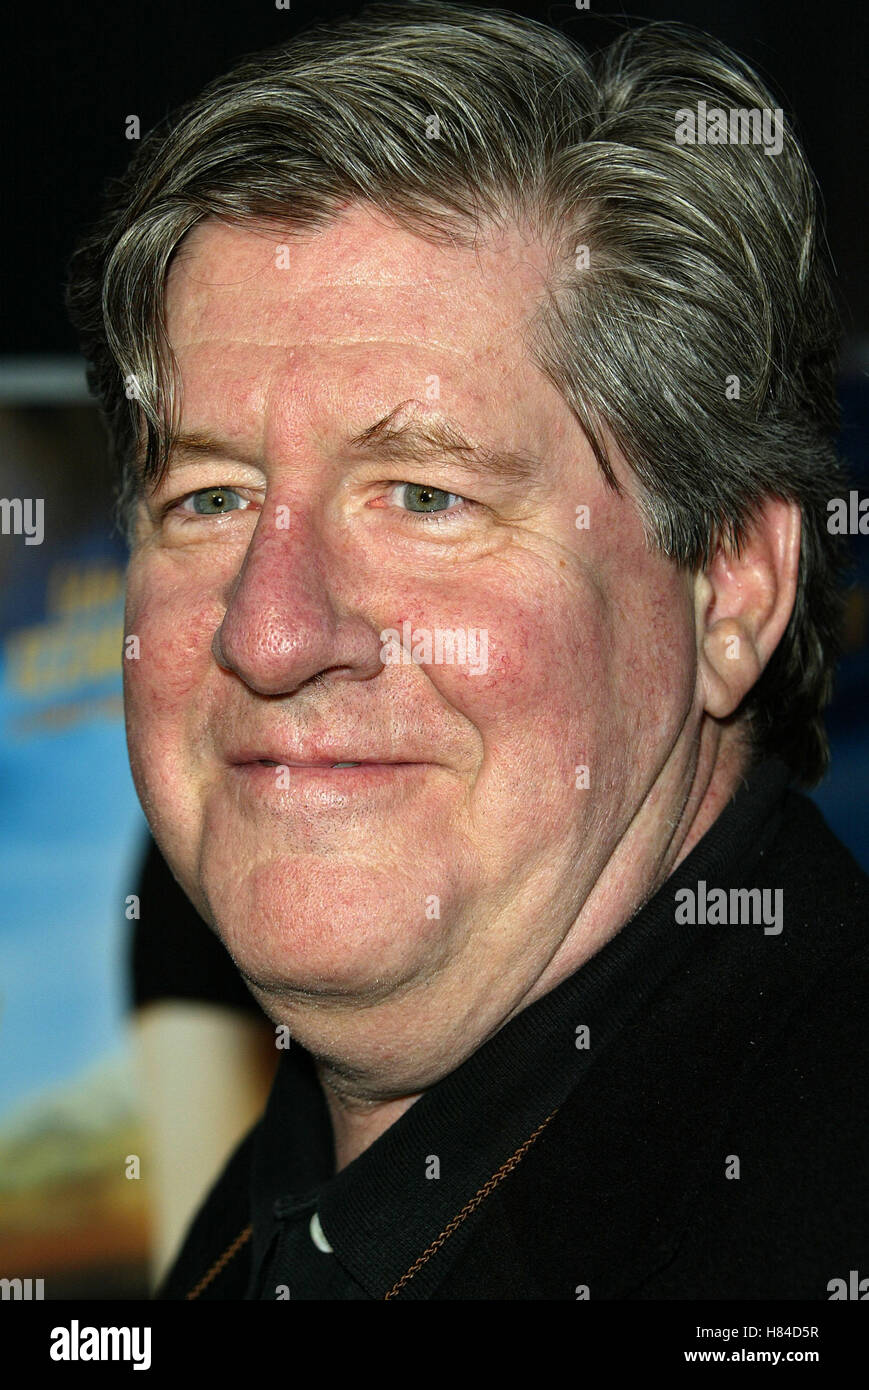 EDWARD HERRMANN THE CAT'S MEOW FILM PREMIERE HOLLYWOOD LOS ANGELES USA 10 April 2002 - Stock Image